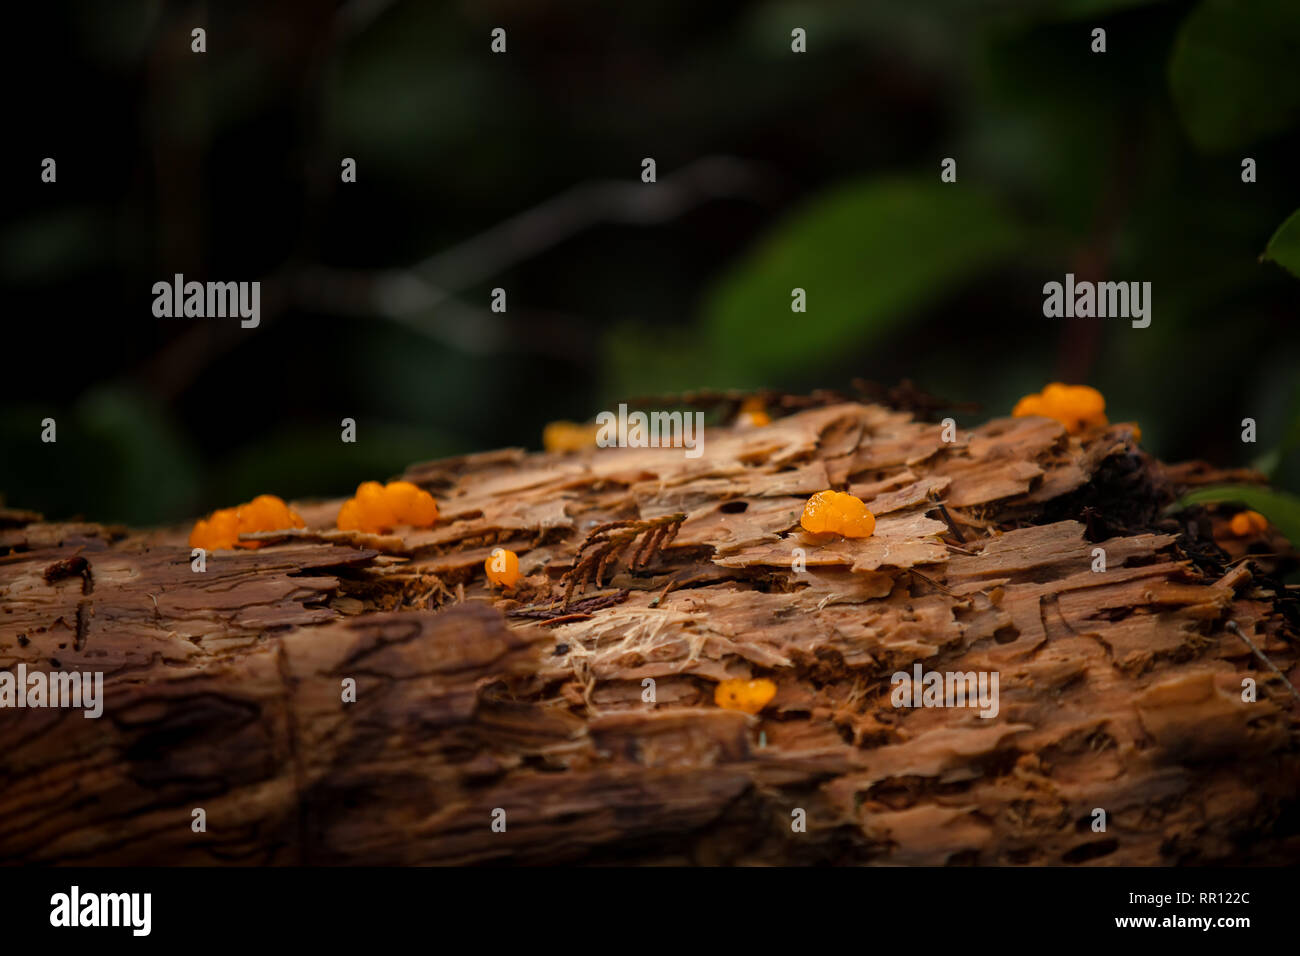 Witches butter mushroom on log - Stock Image